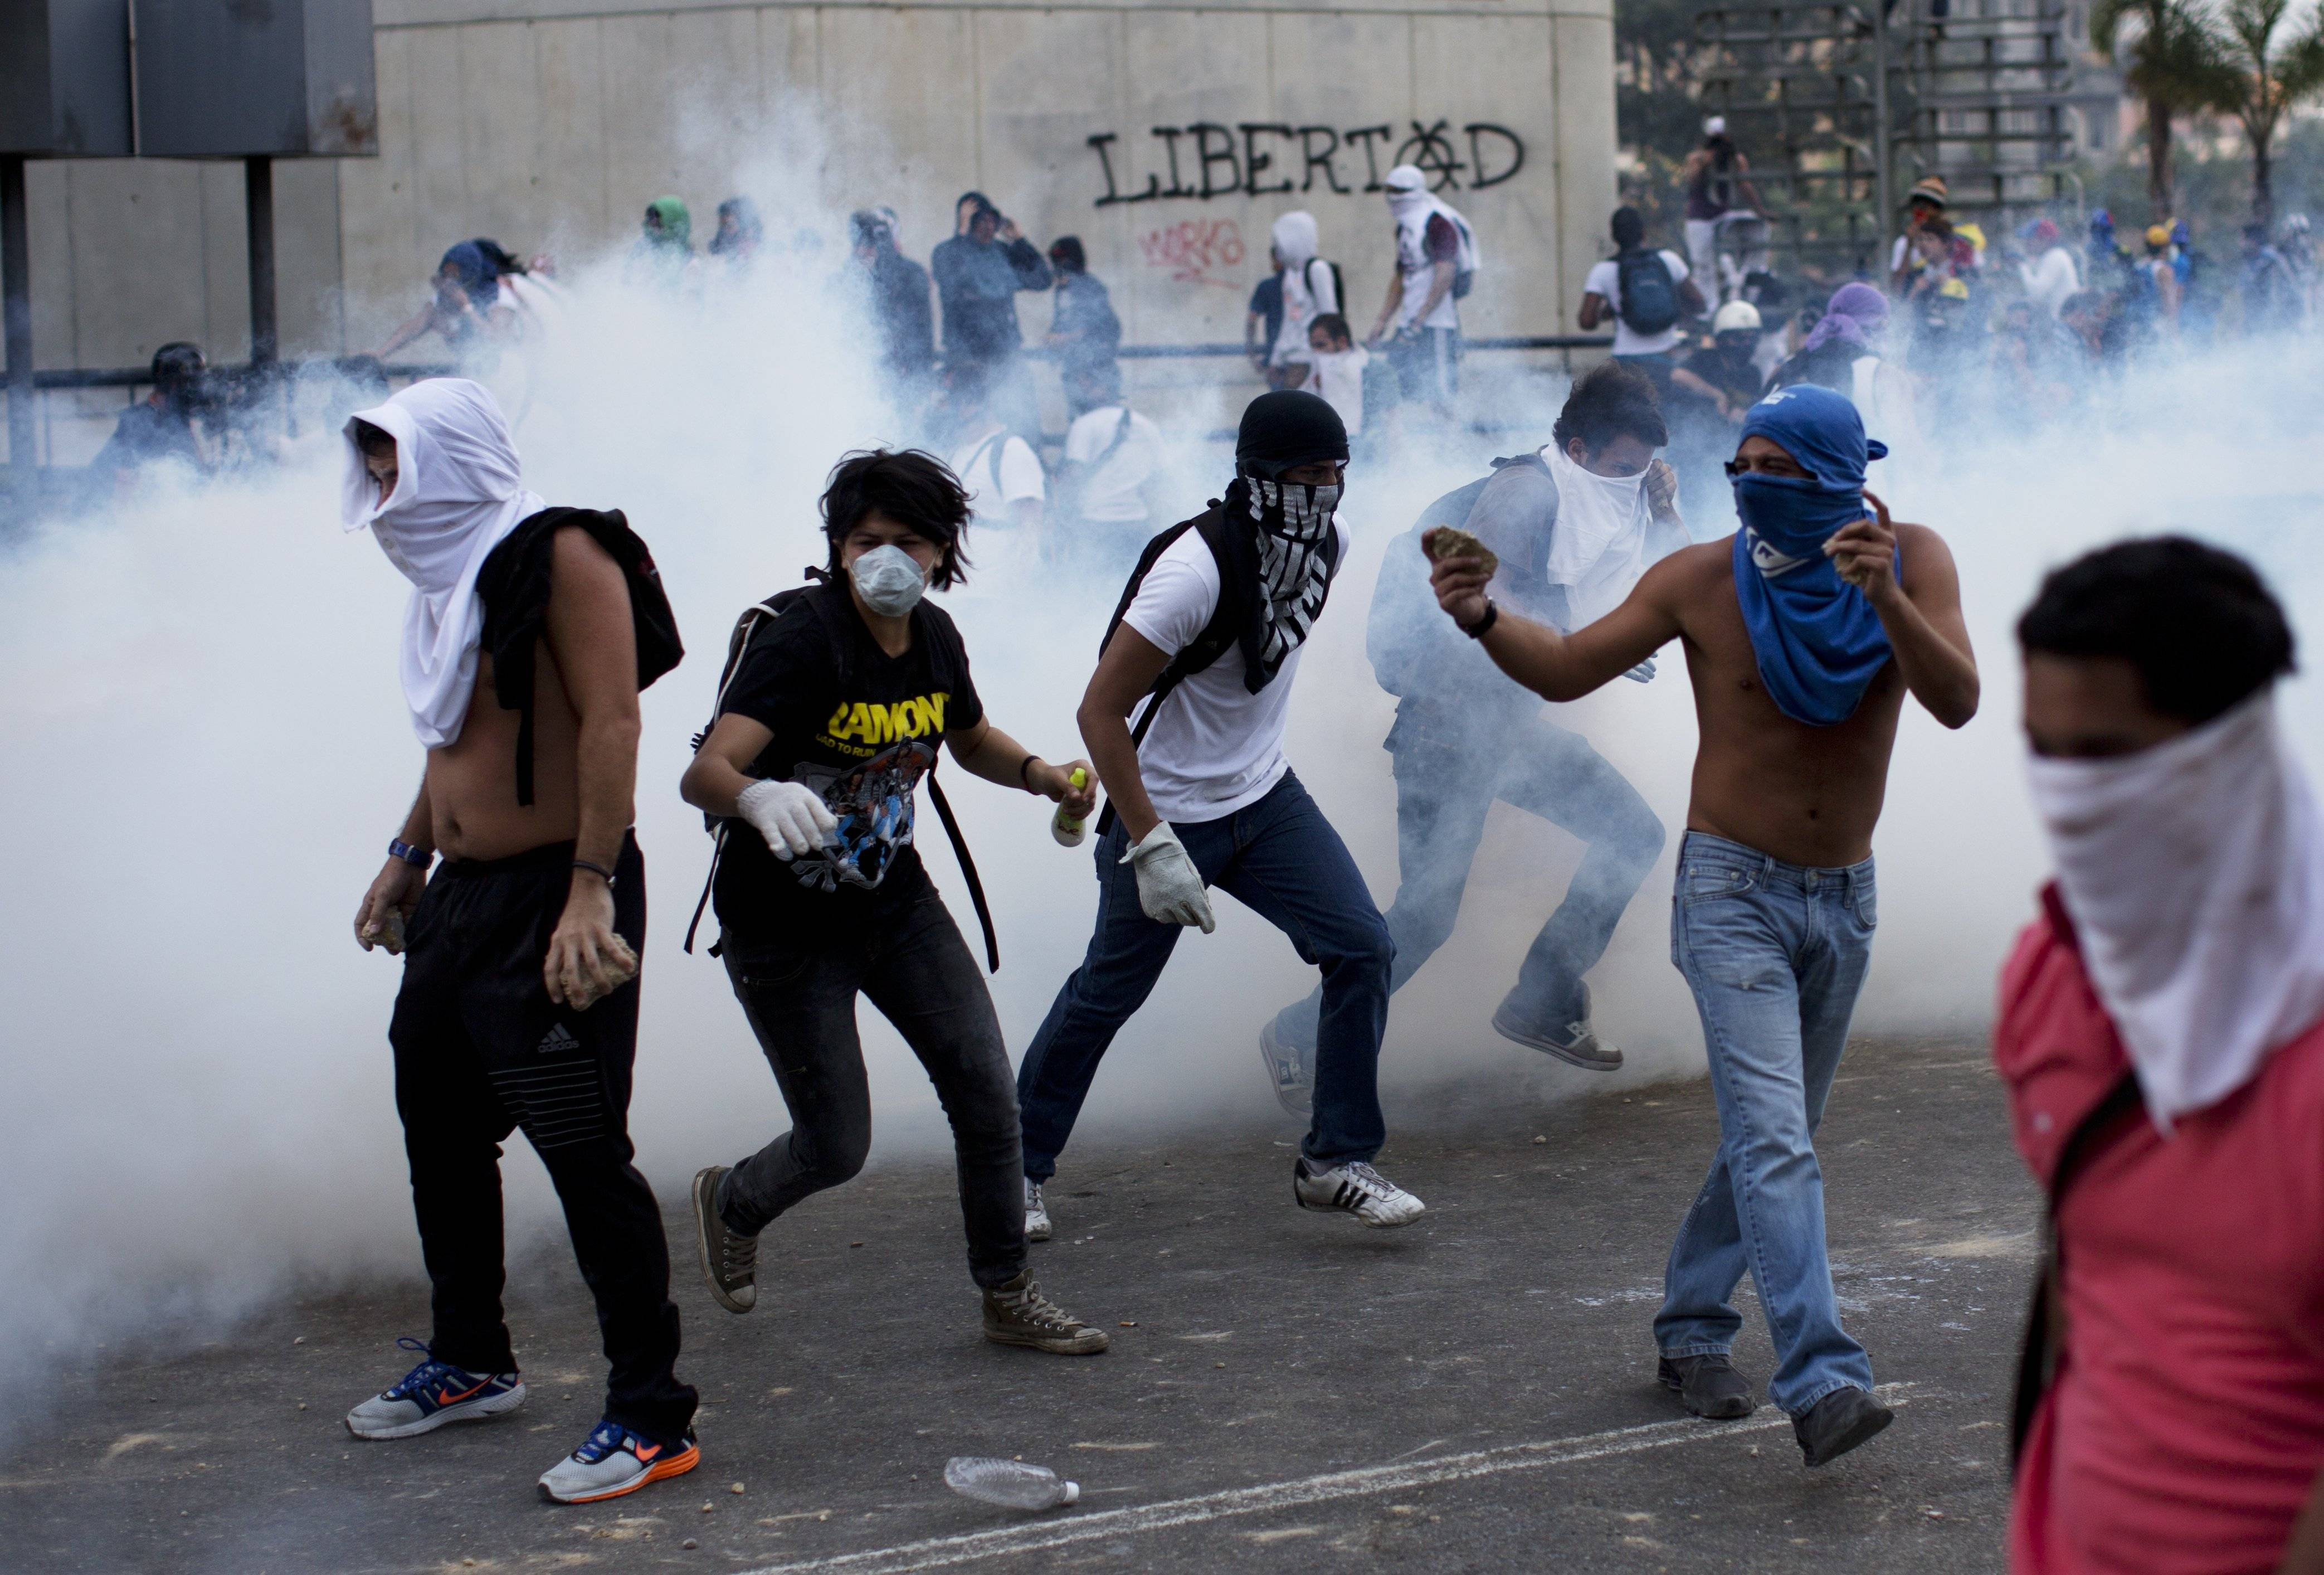 A group of masked men run for cover Saturday after riot police launched tear gas in Caracas, Venezuela. After an opposition rally broke up in the late afternoon, in a pattern that has been seen in past demonstrations, about 1,000 stragglers erected barricades of trash and other debris and threw rocks and bottles at police and National Guardsmen.